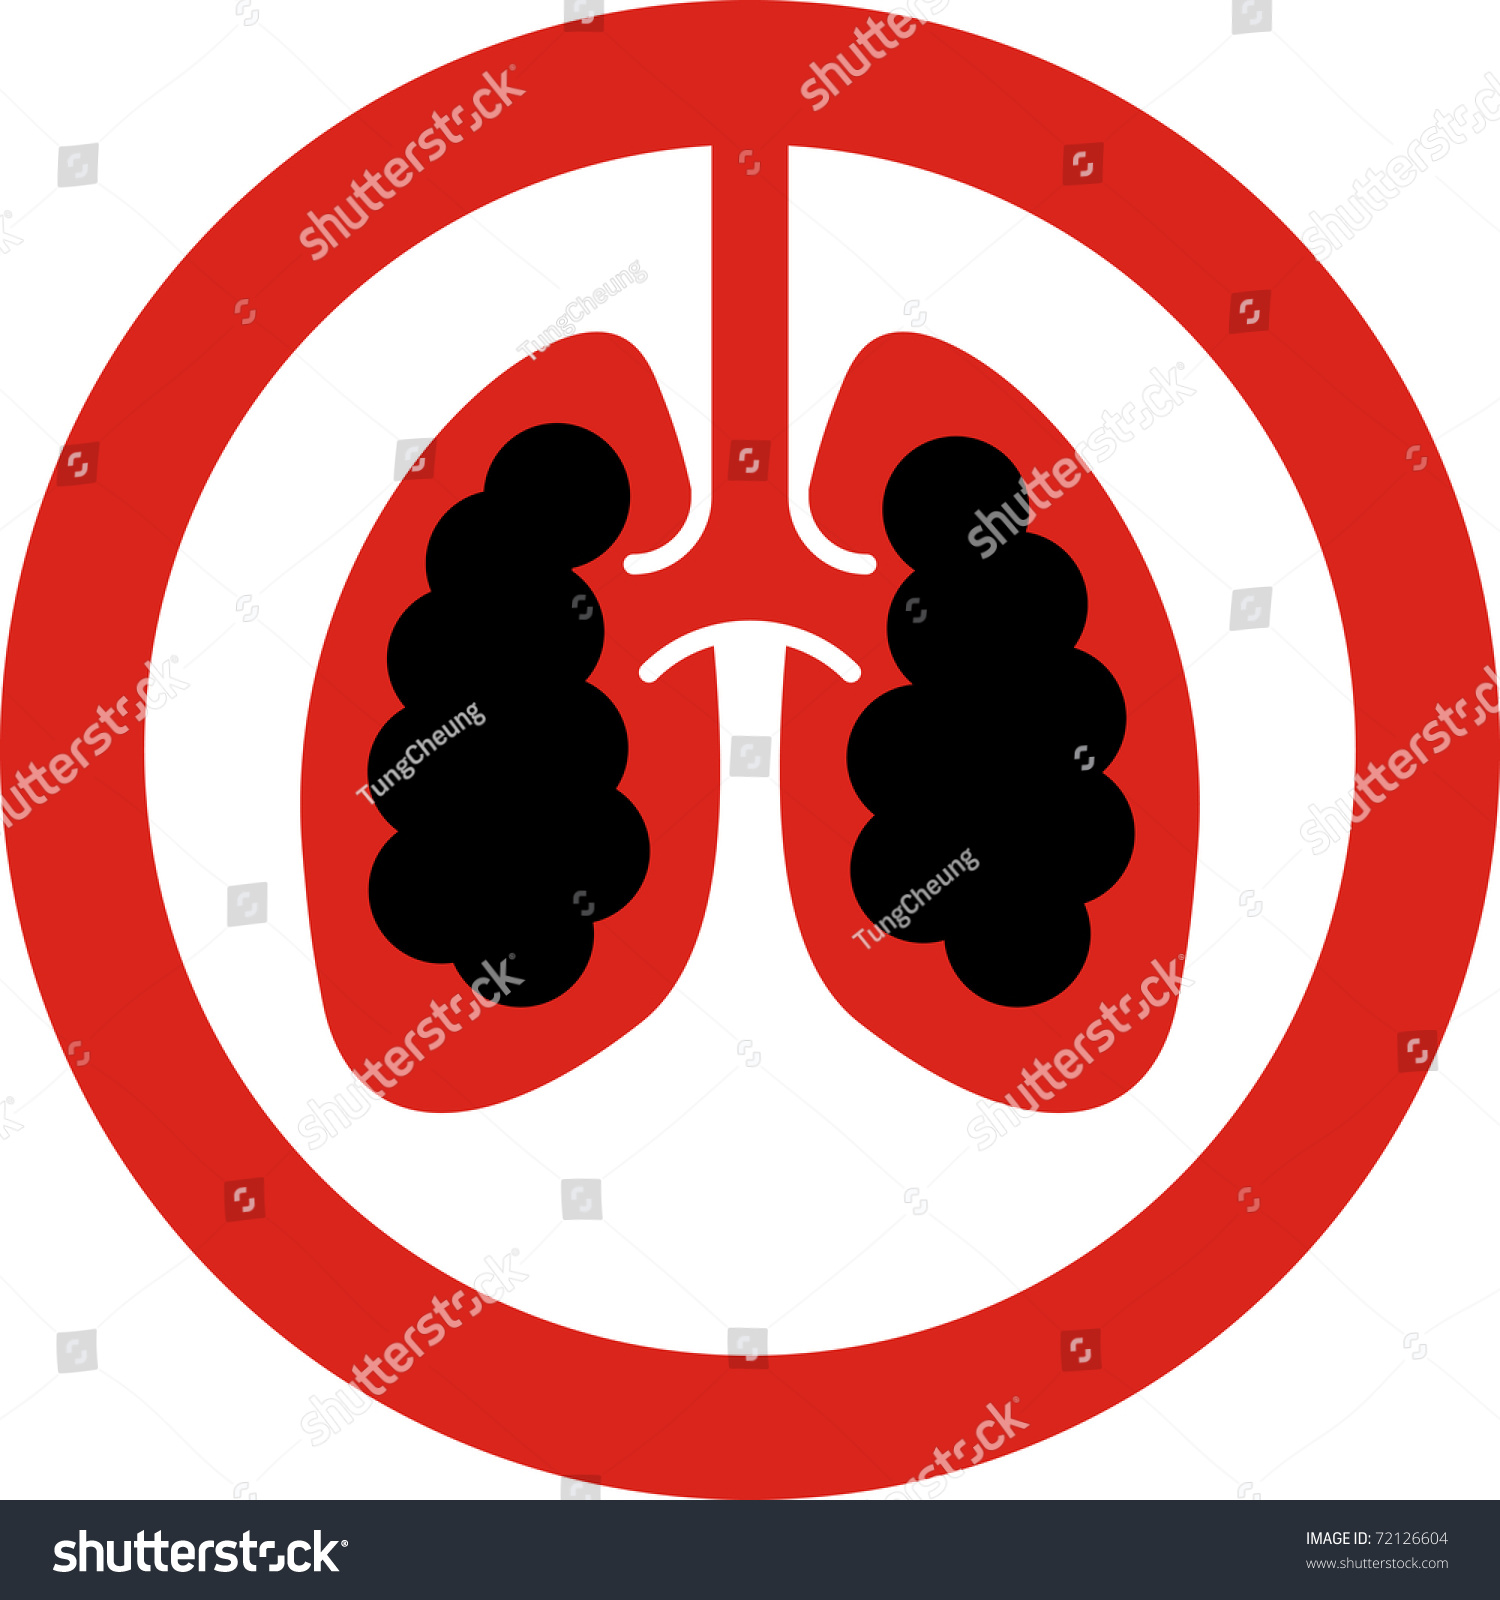 No Smoking Sign Lung Cancer Concept Stock Illustration 72126604 ...